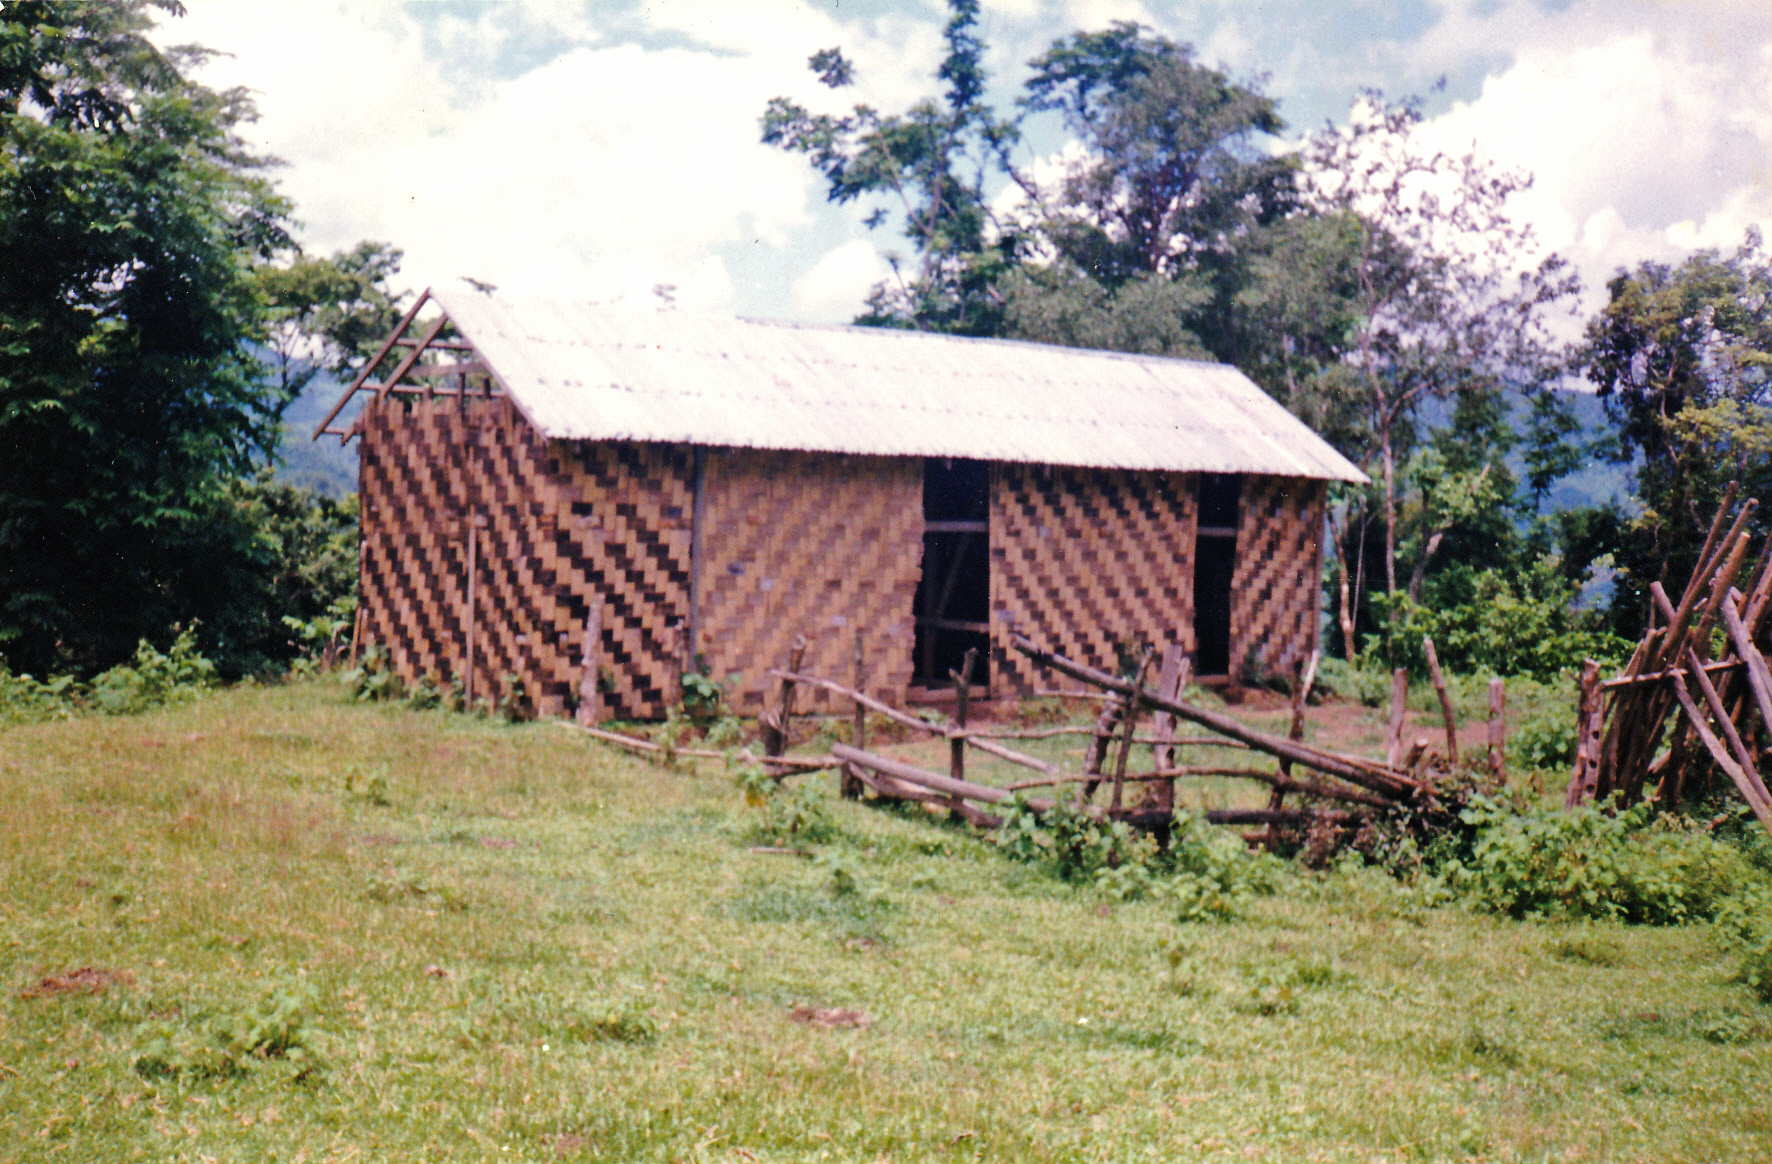 The Mongken school, the only school Lamboi attended whilst growing up.